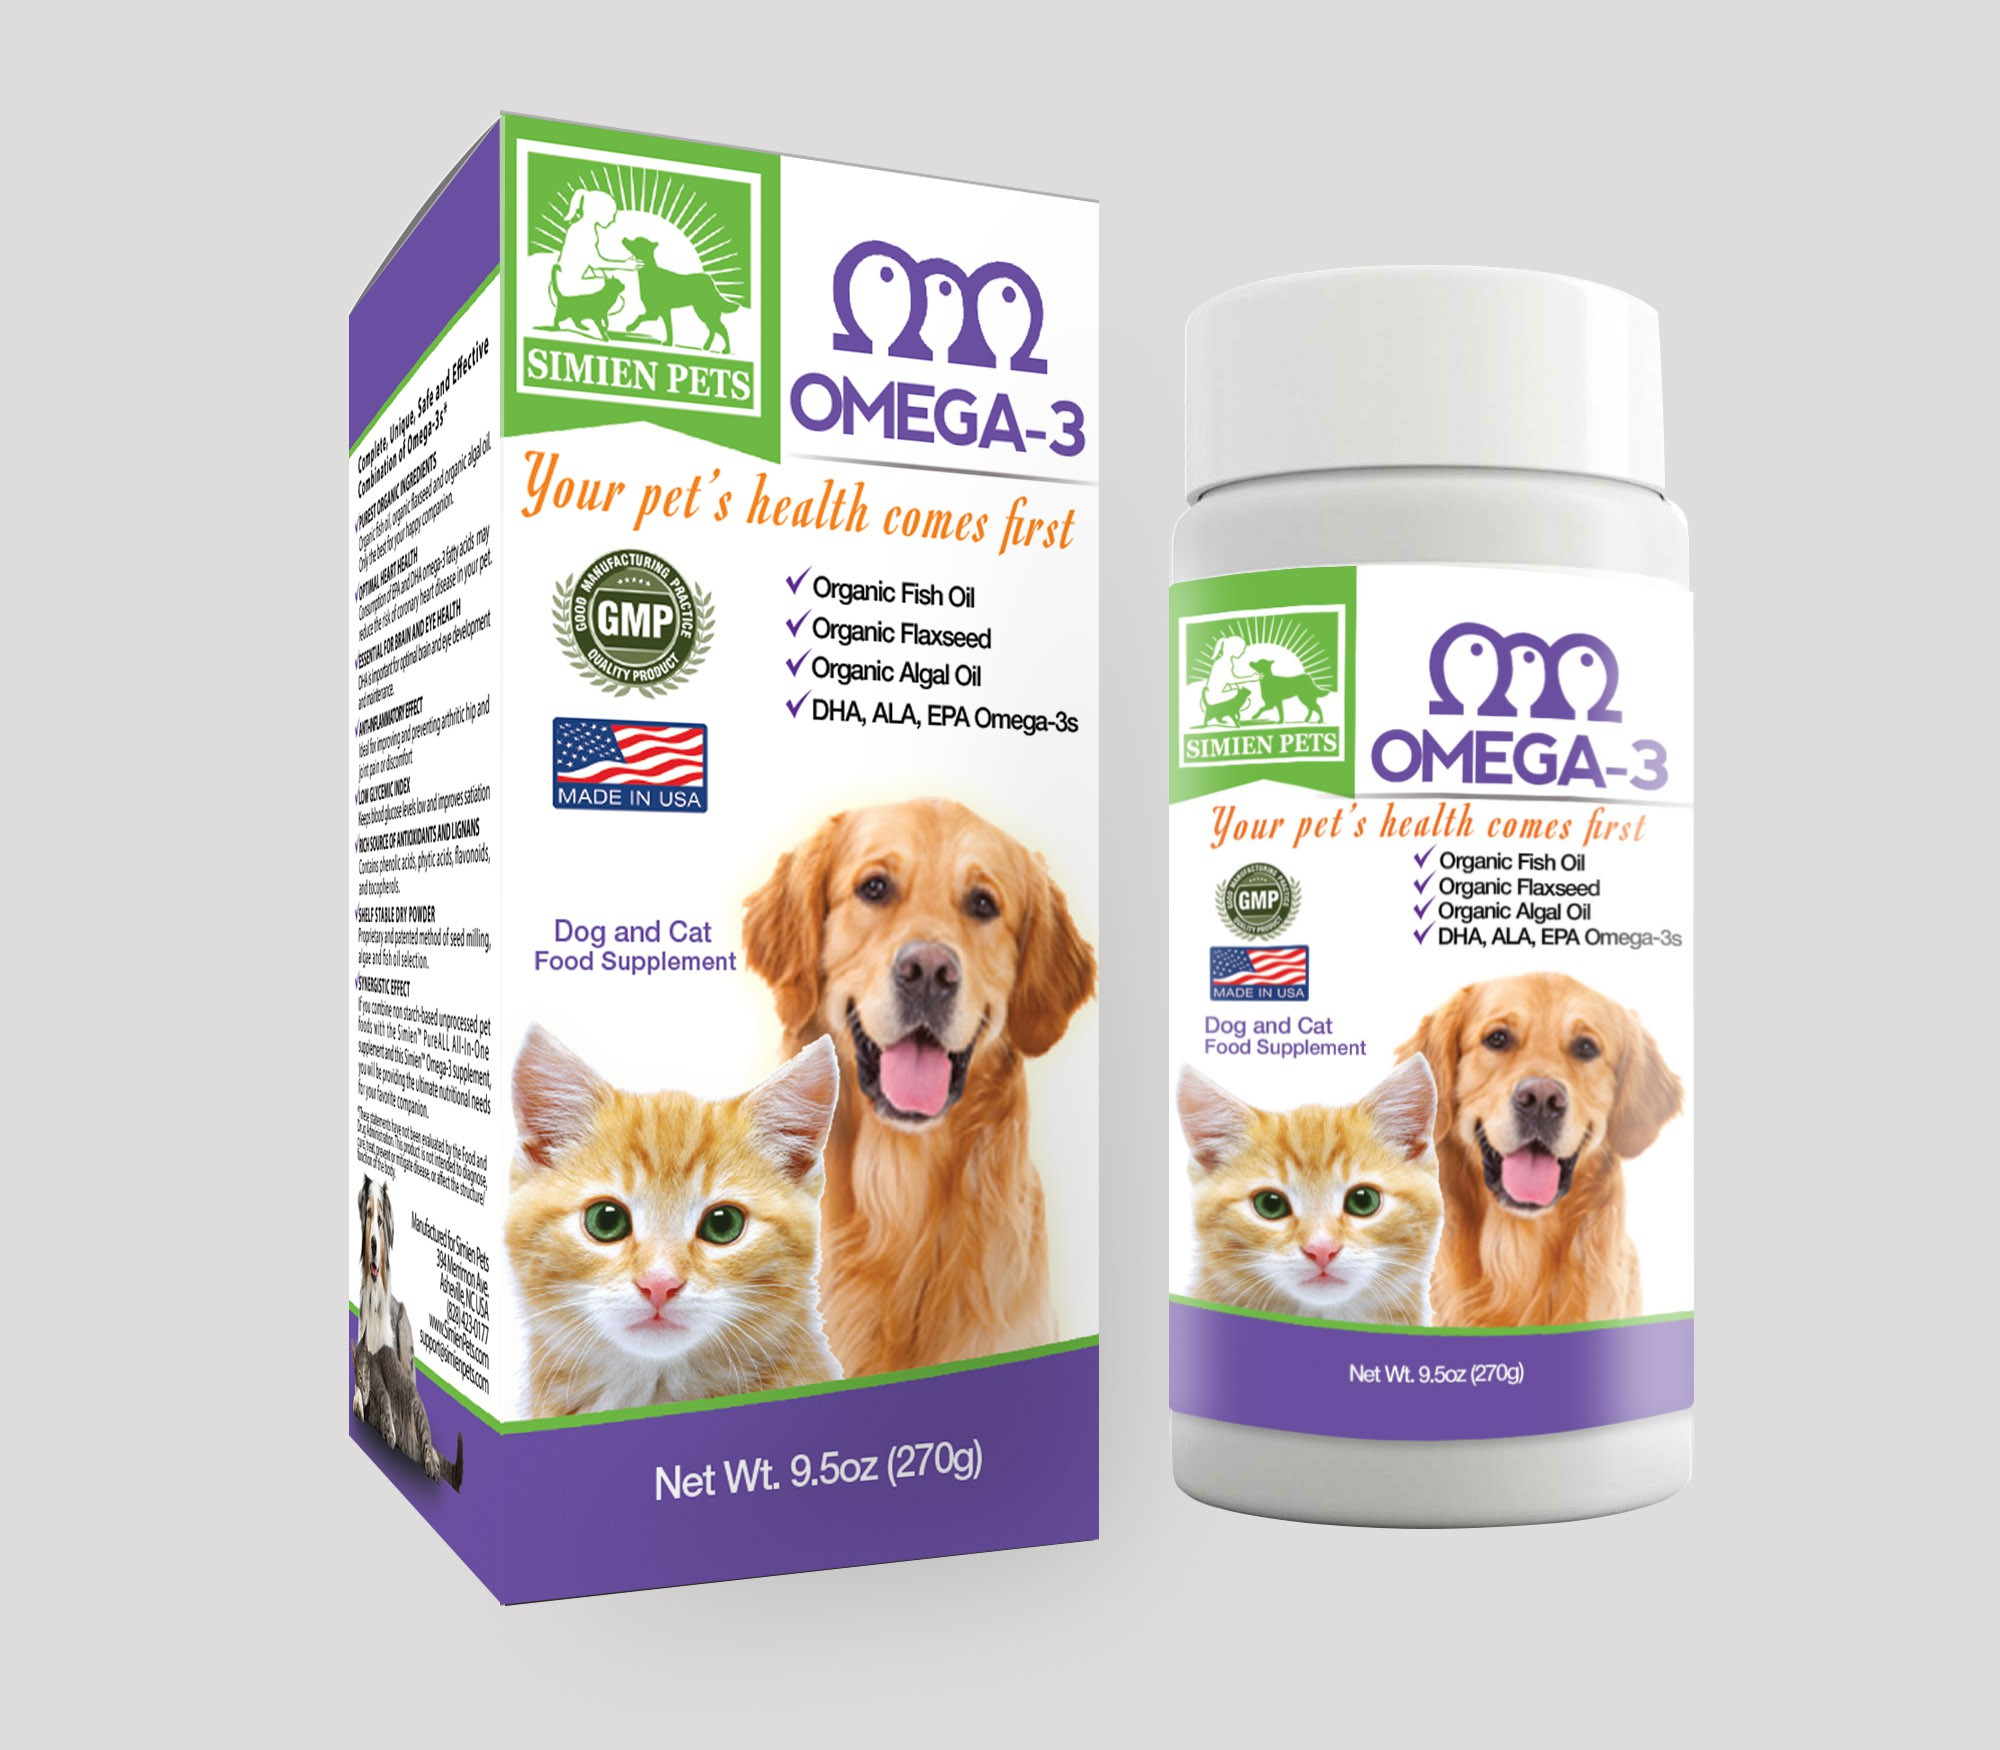 Create a fish oil pet supplement product label/package (same design)